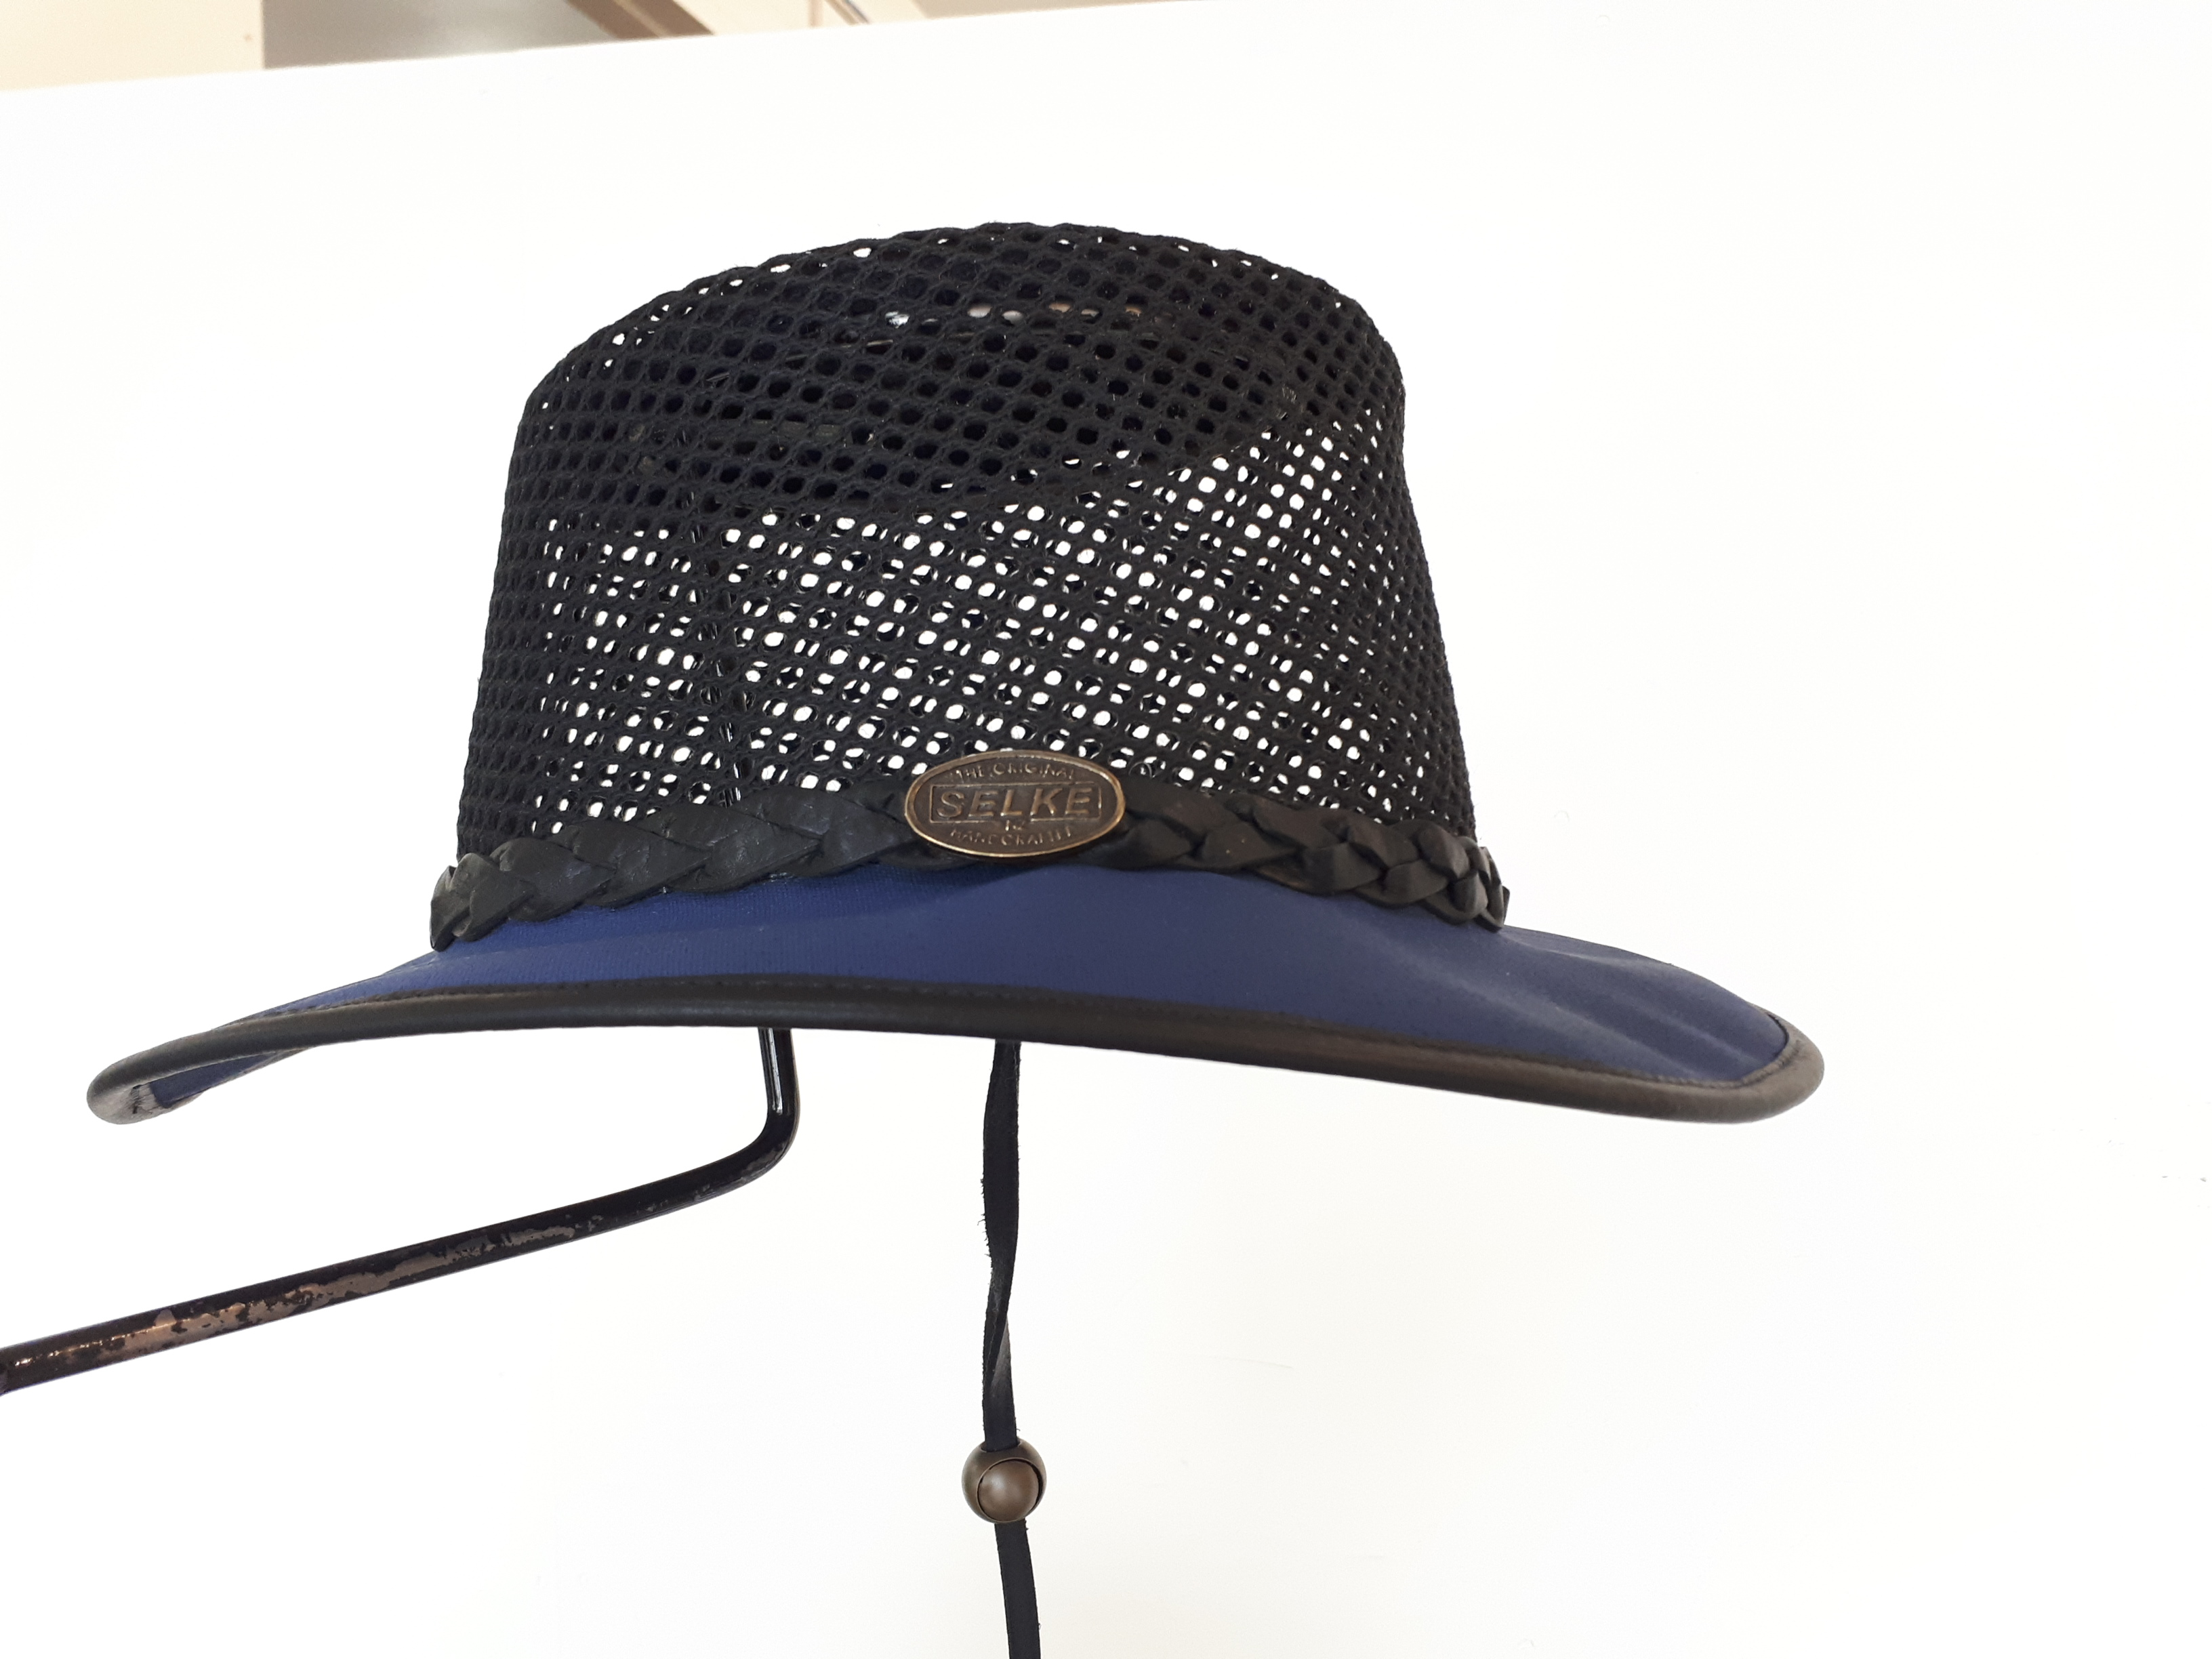 268383e3509 Airhead - Selke NZ high quality handcrafted leather   fabric hats